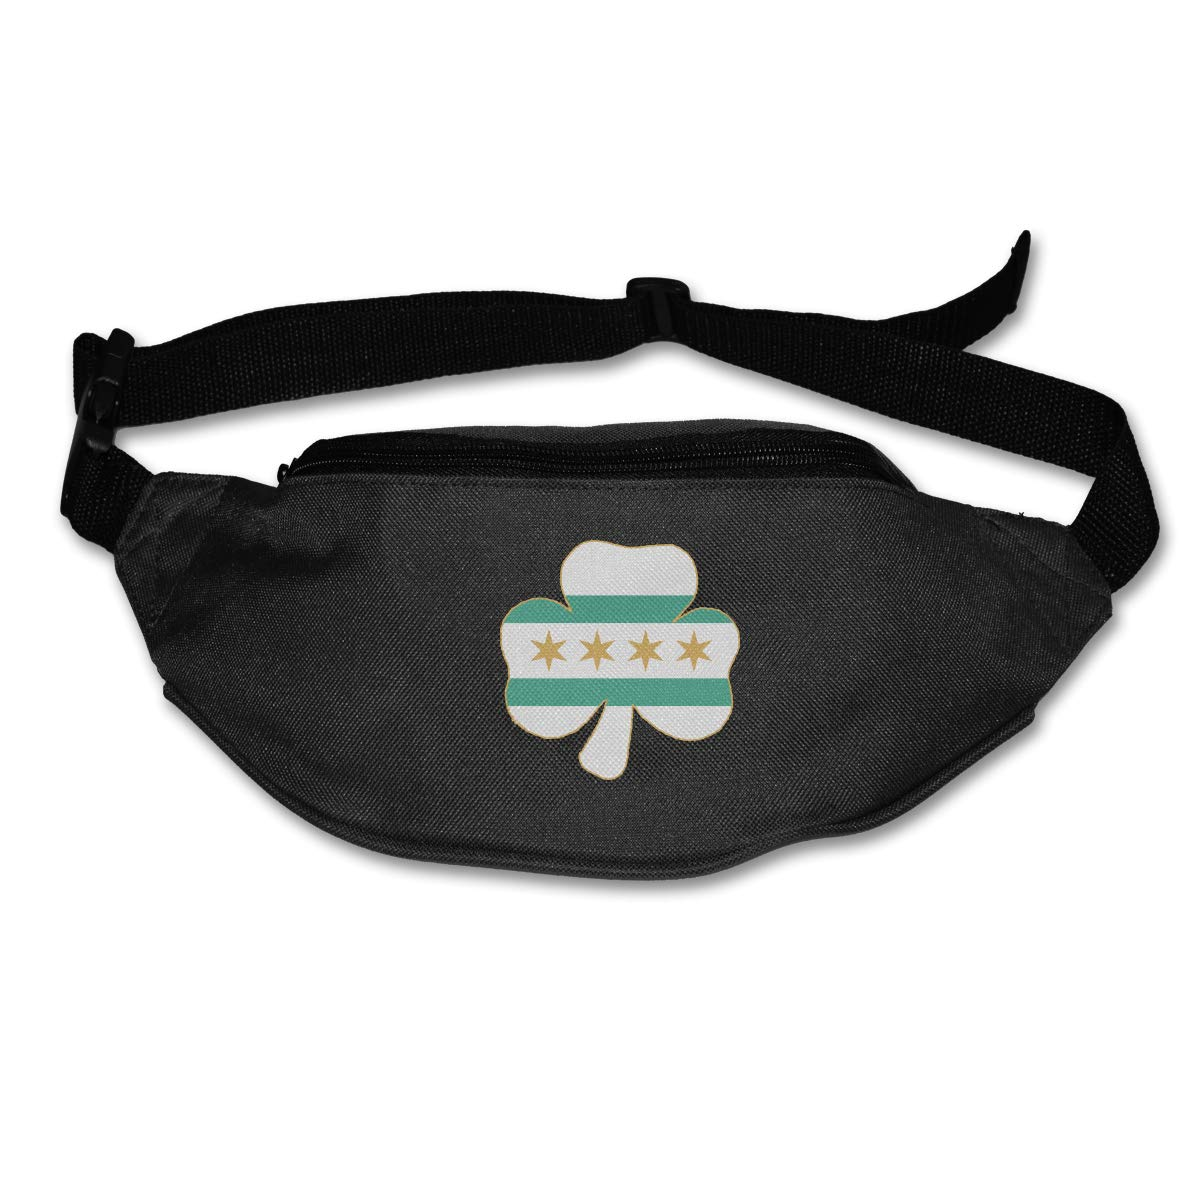 I Love Shamrock Irish Beer Sport Waist Pack Fanny Pack Adjustable For Hike